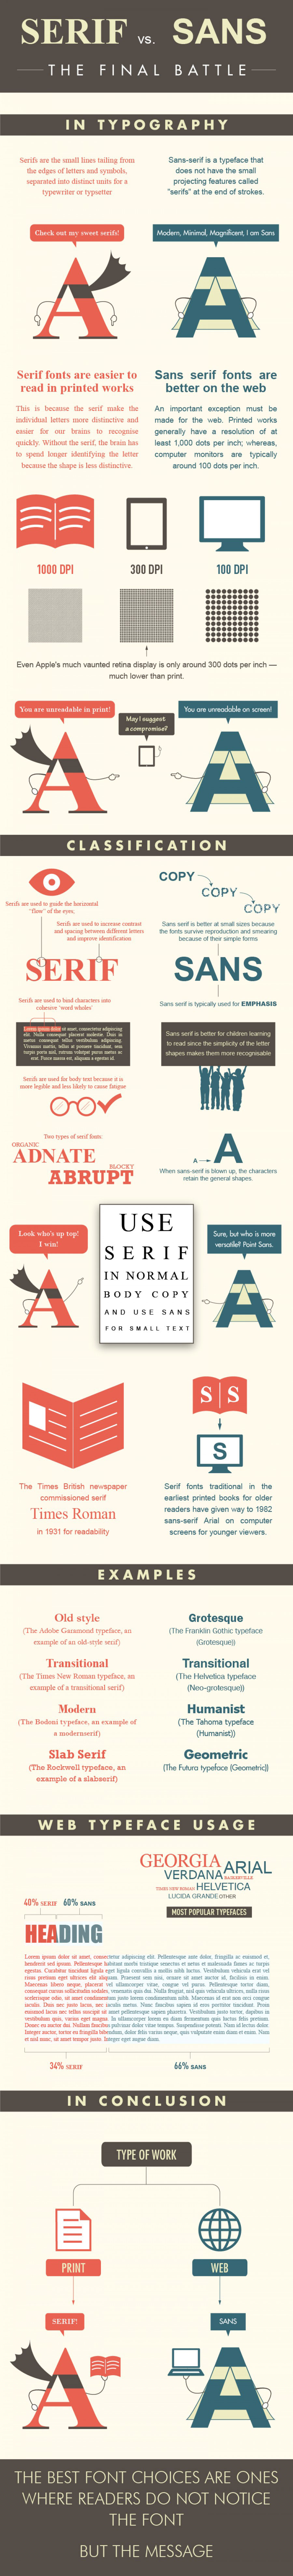 The differences between serif and sans serif fonts.